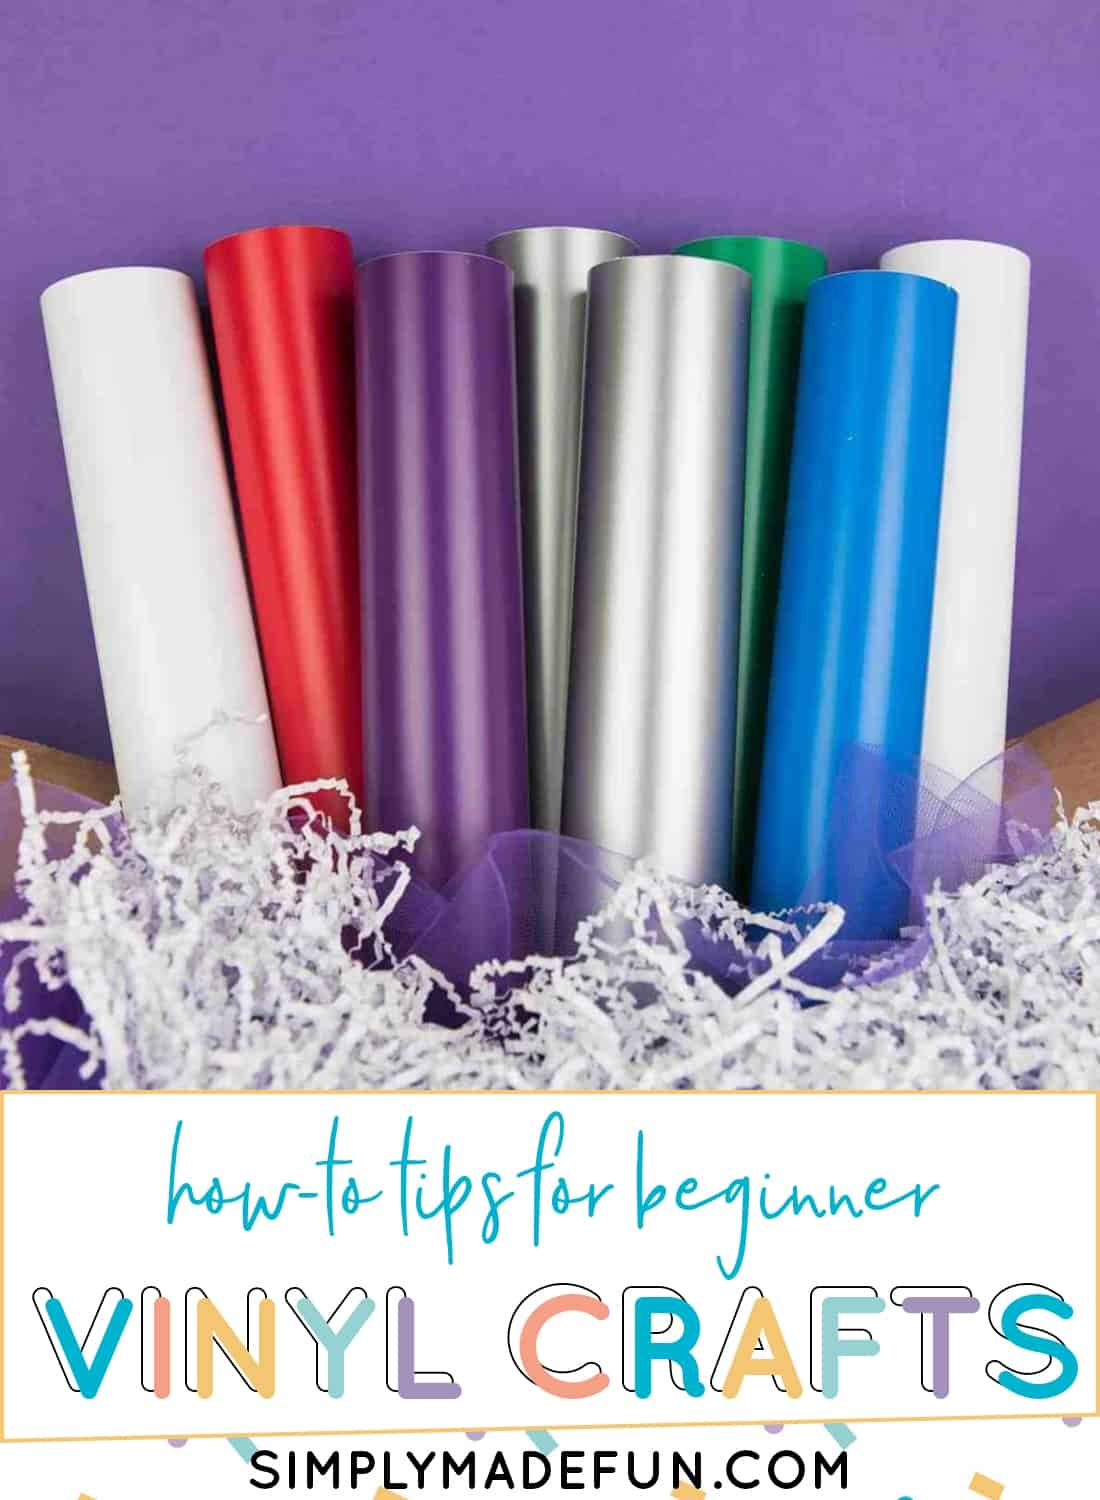 Don't be nervous to craft with vinyl! I've got 15 beginner projects for you to try and tips to make the beginner vinyl crafts easy and fun!